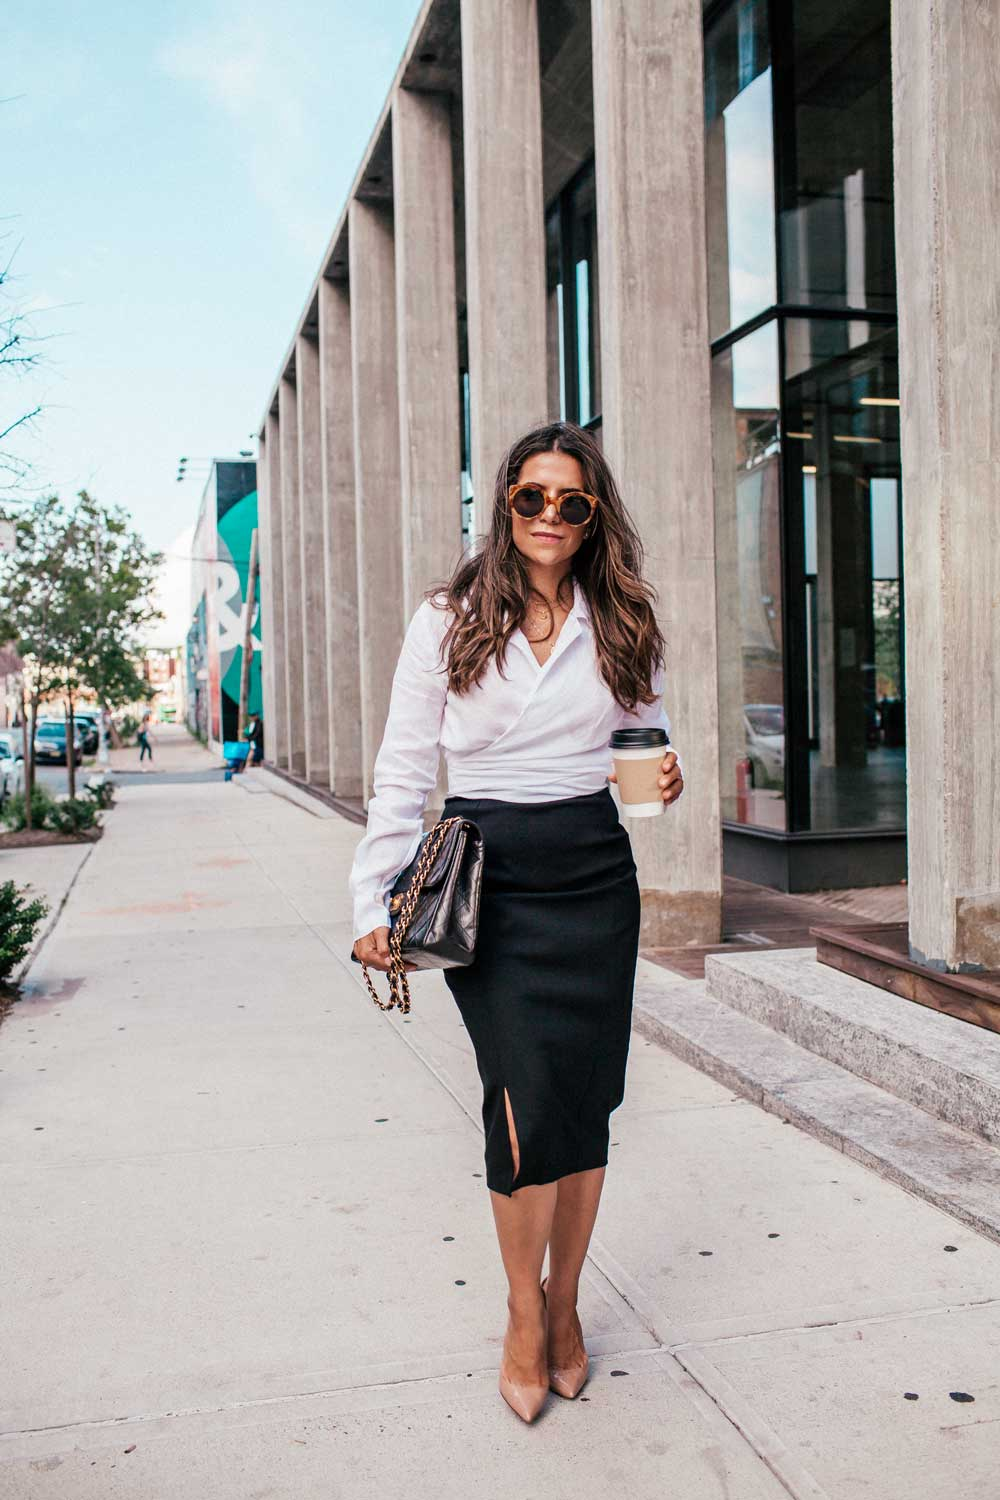 d8bf689de55556 Corporate Catwalk Black Pencil Skirt White Shirt Nude Heels Brooklyn  Workwear Basics Everyday Fashion Office 5